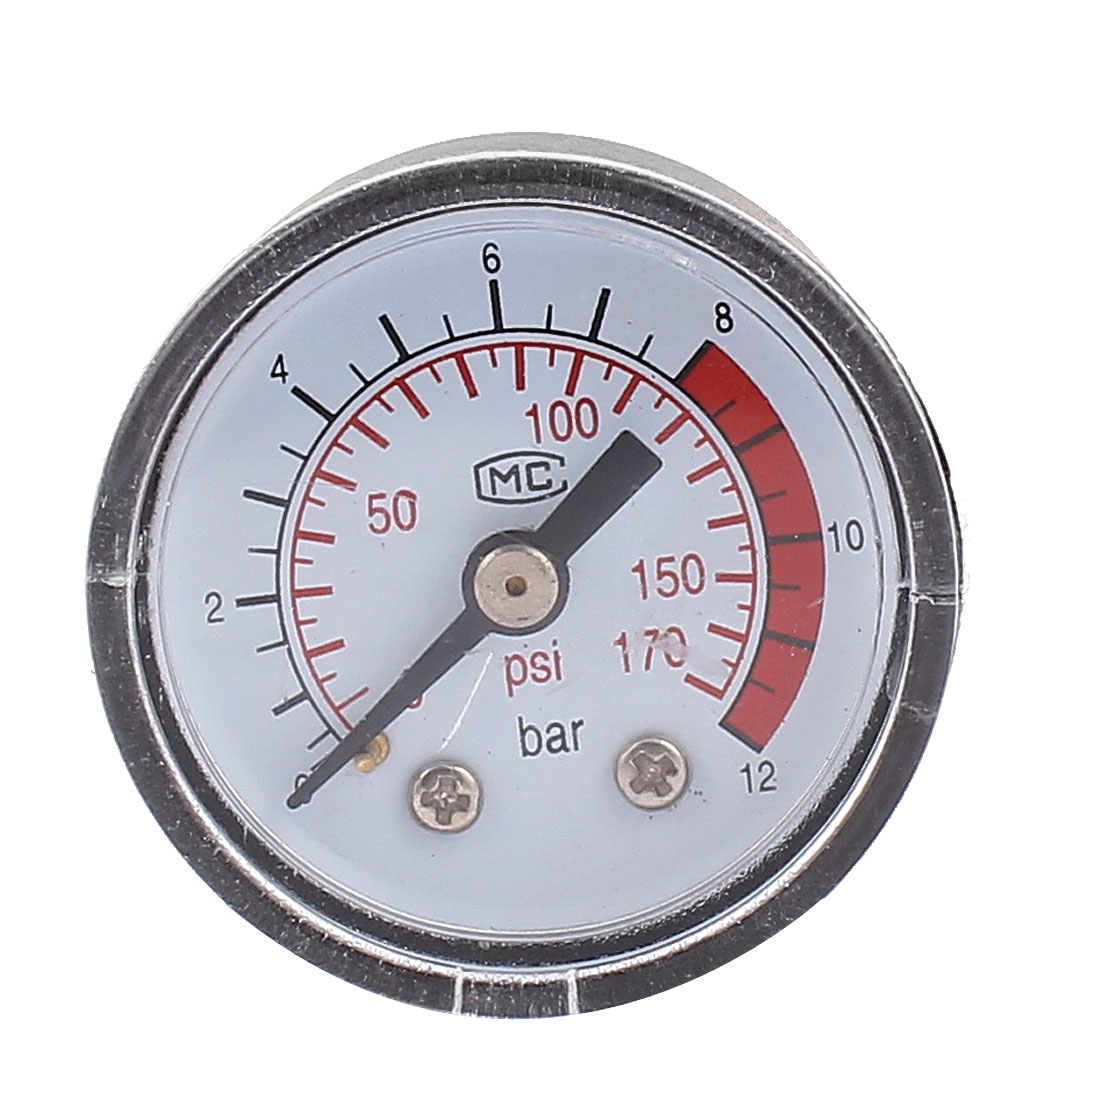 9.8mm 1/8BSP Male Thread Water Air Compressor Pressure Gauge Meter